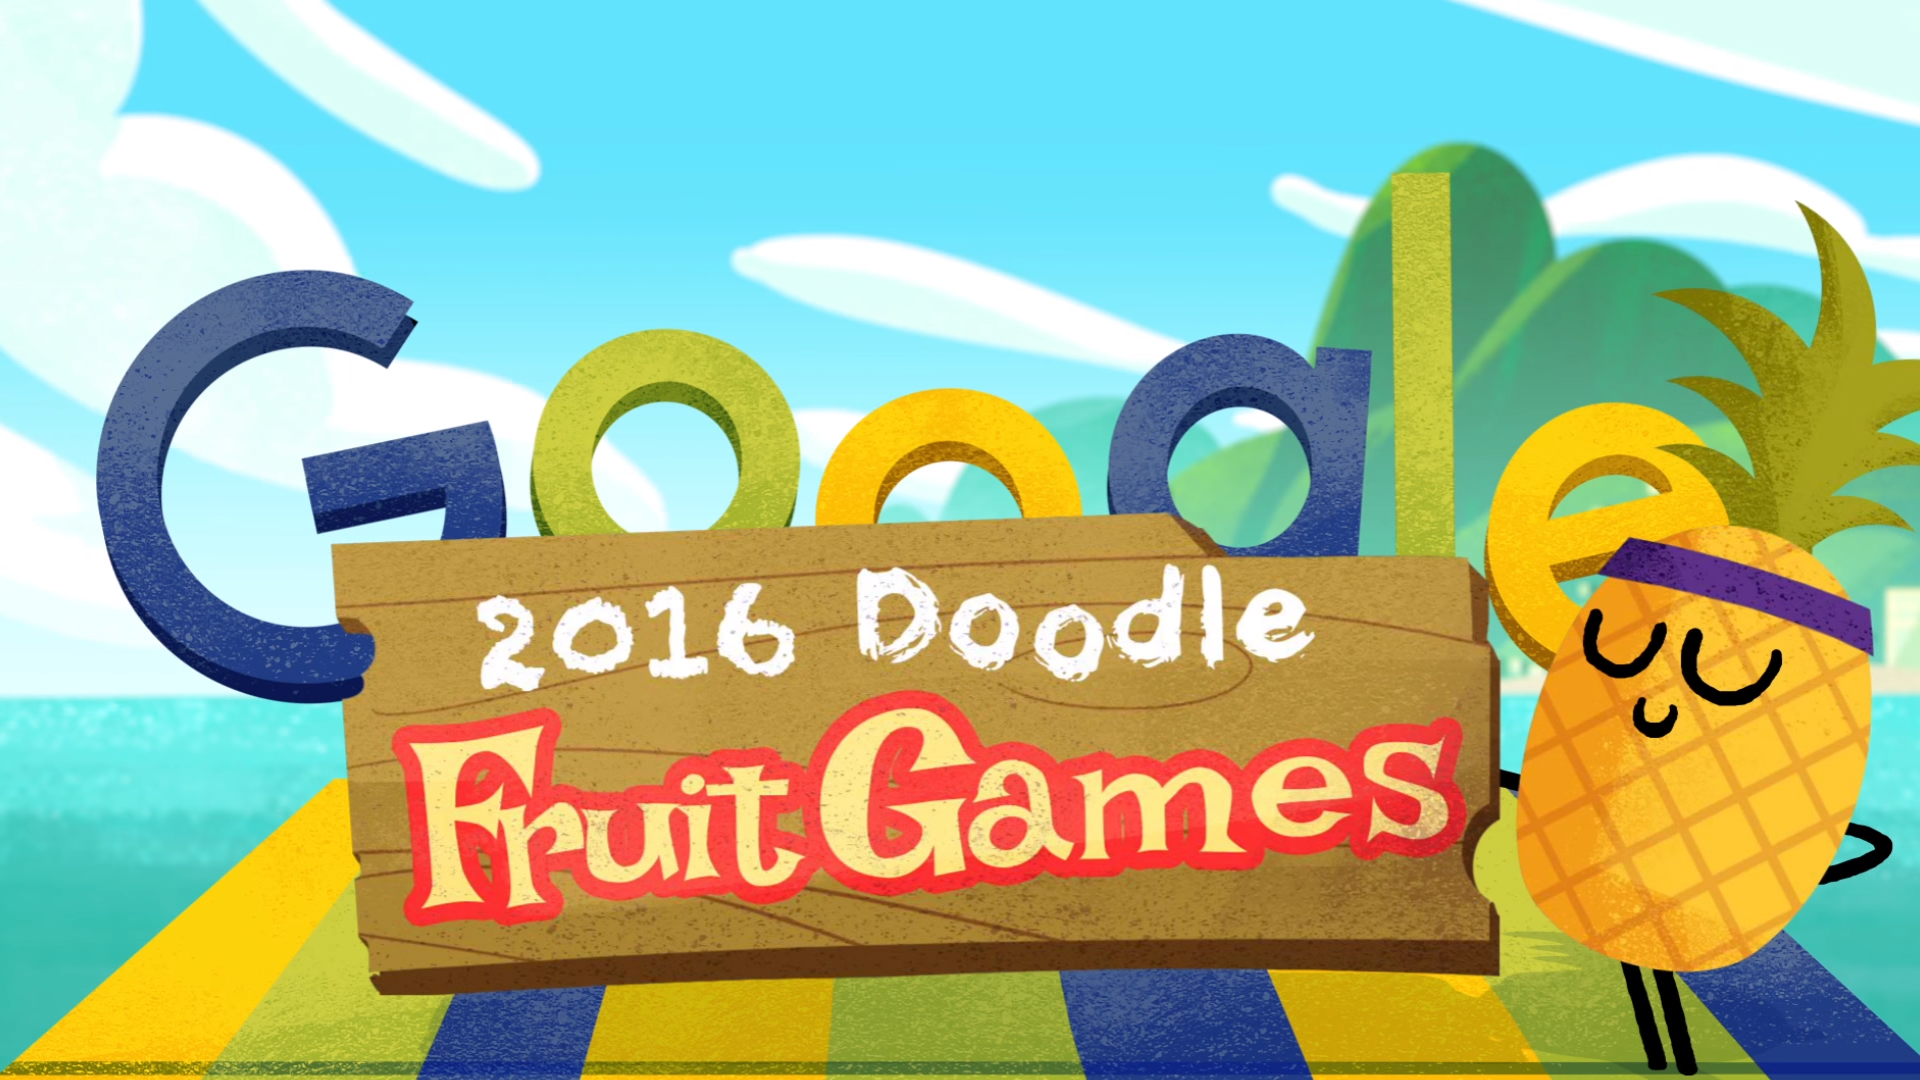 fruite game